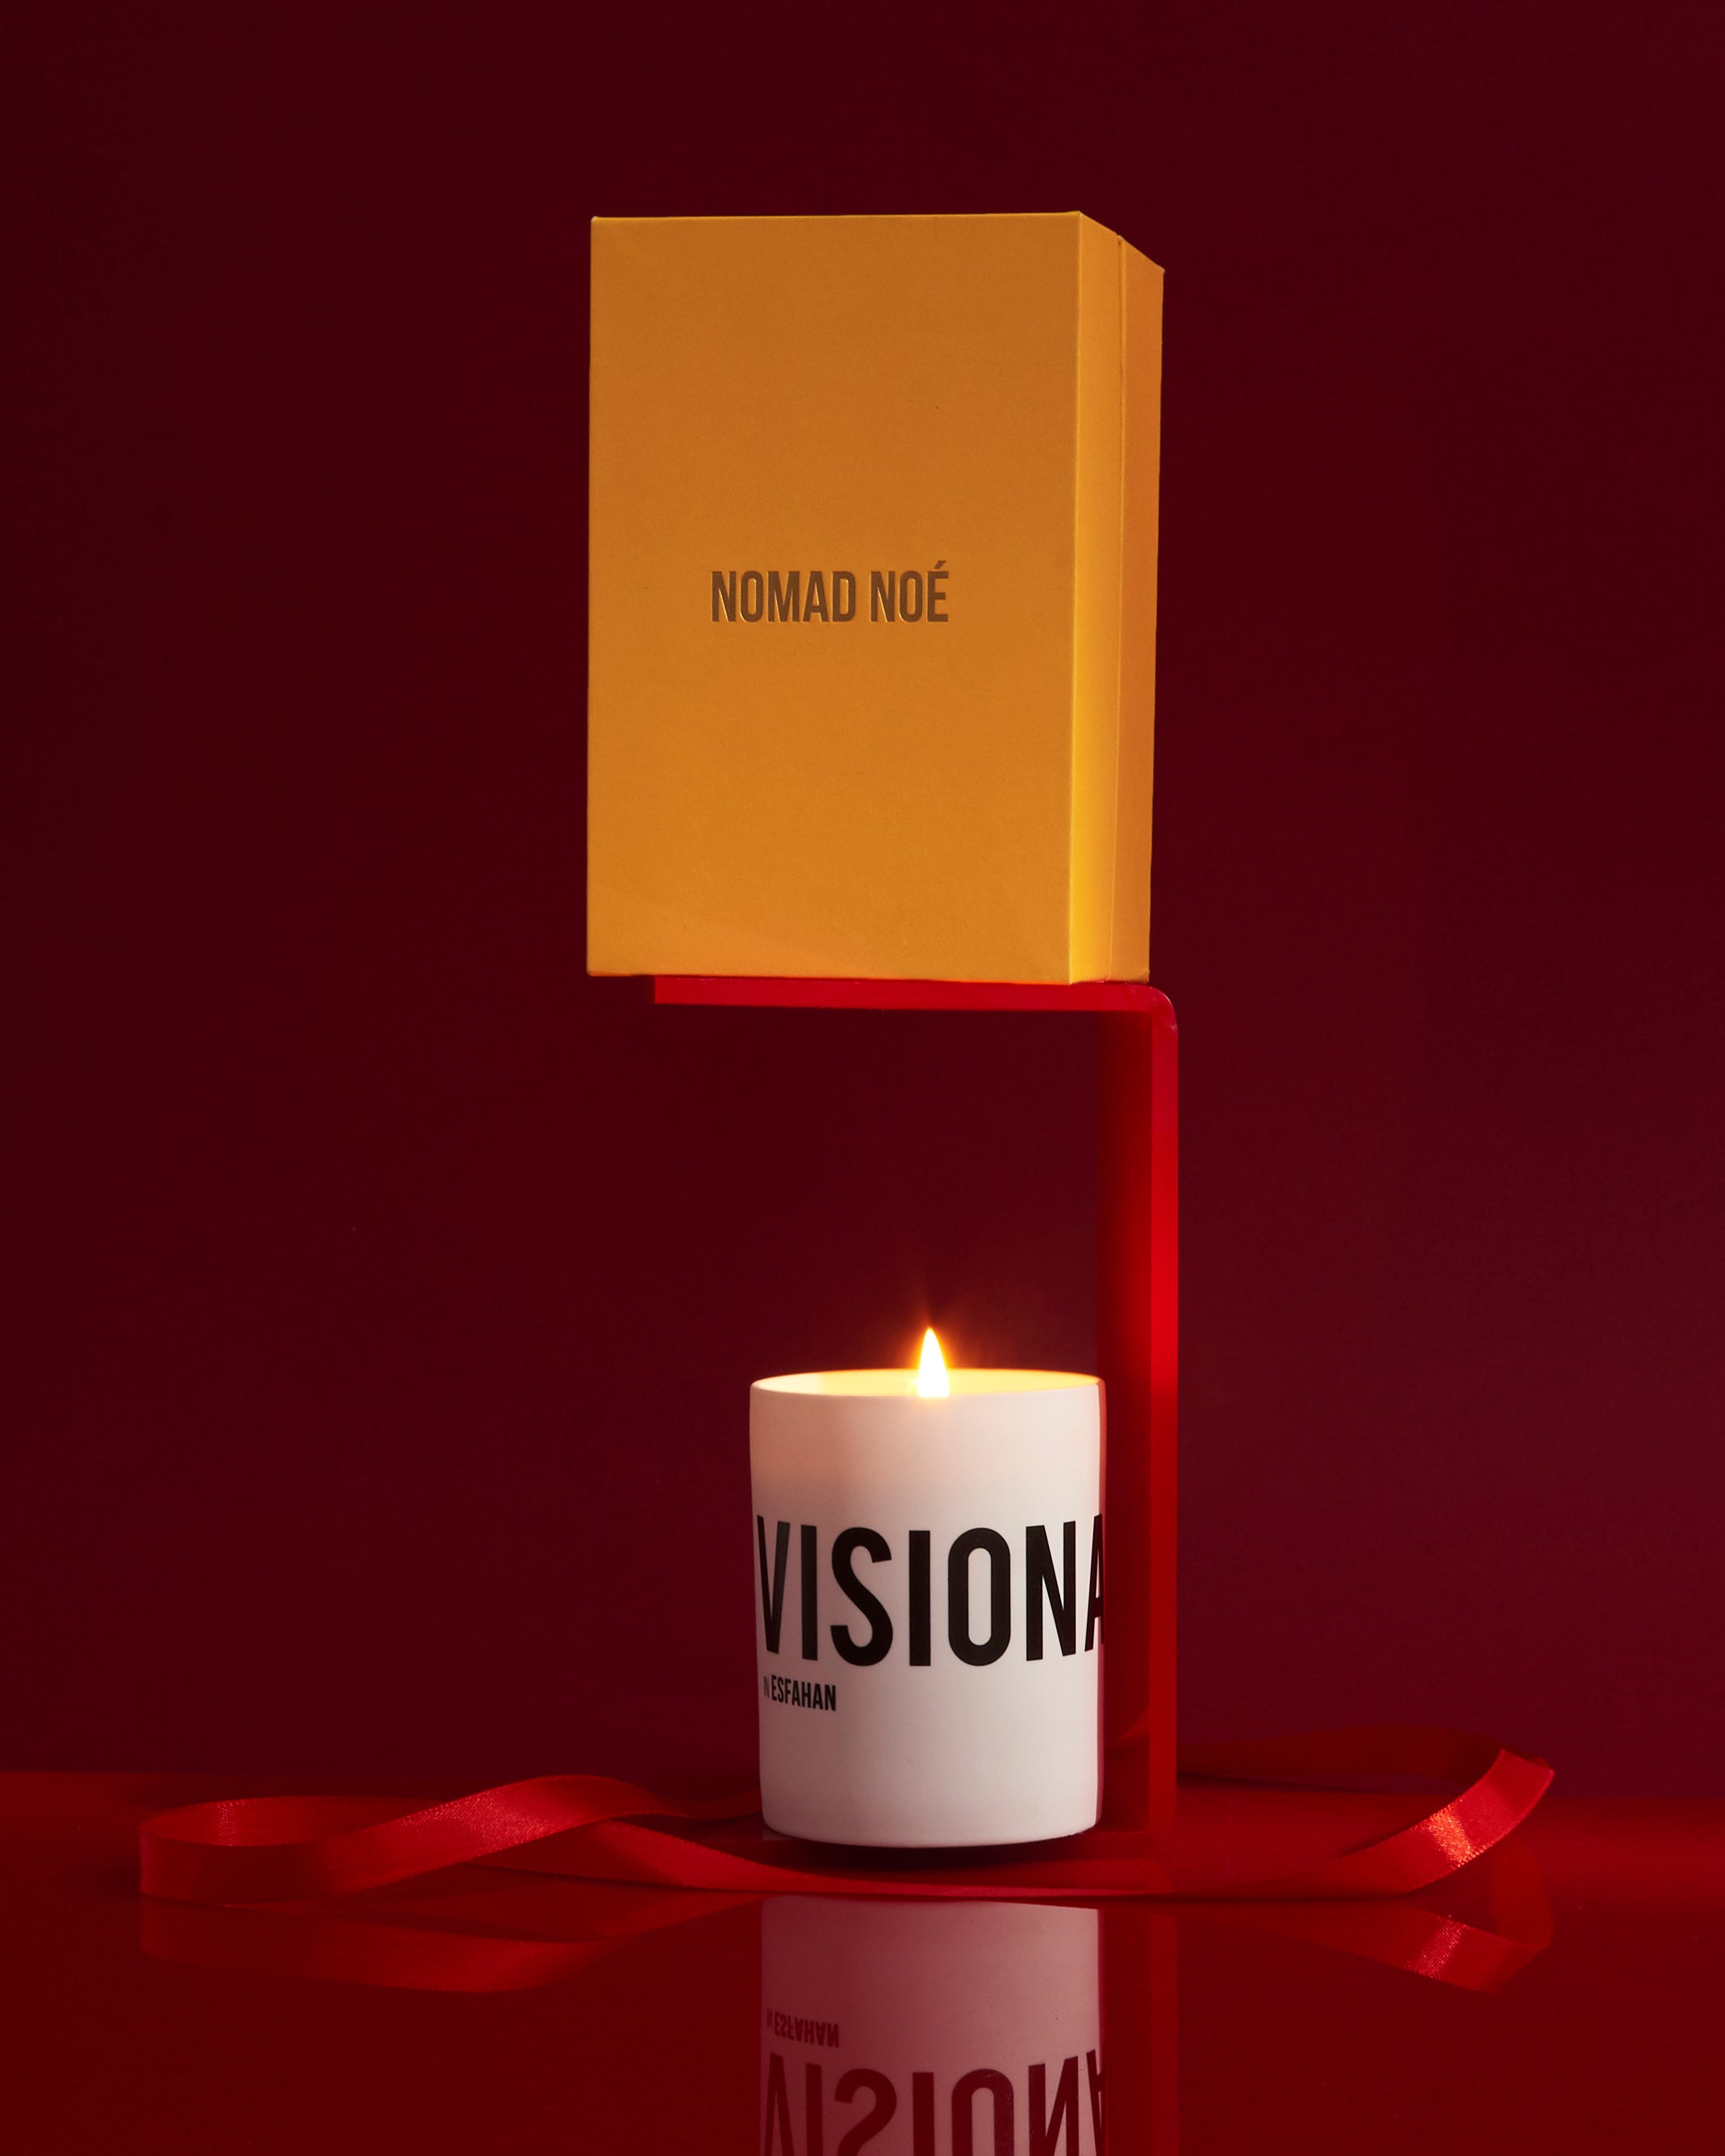 Visionary Scented Candle by Nomad Noé